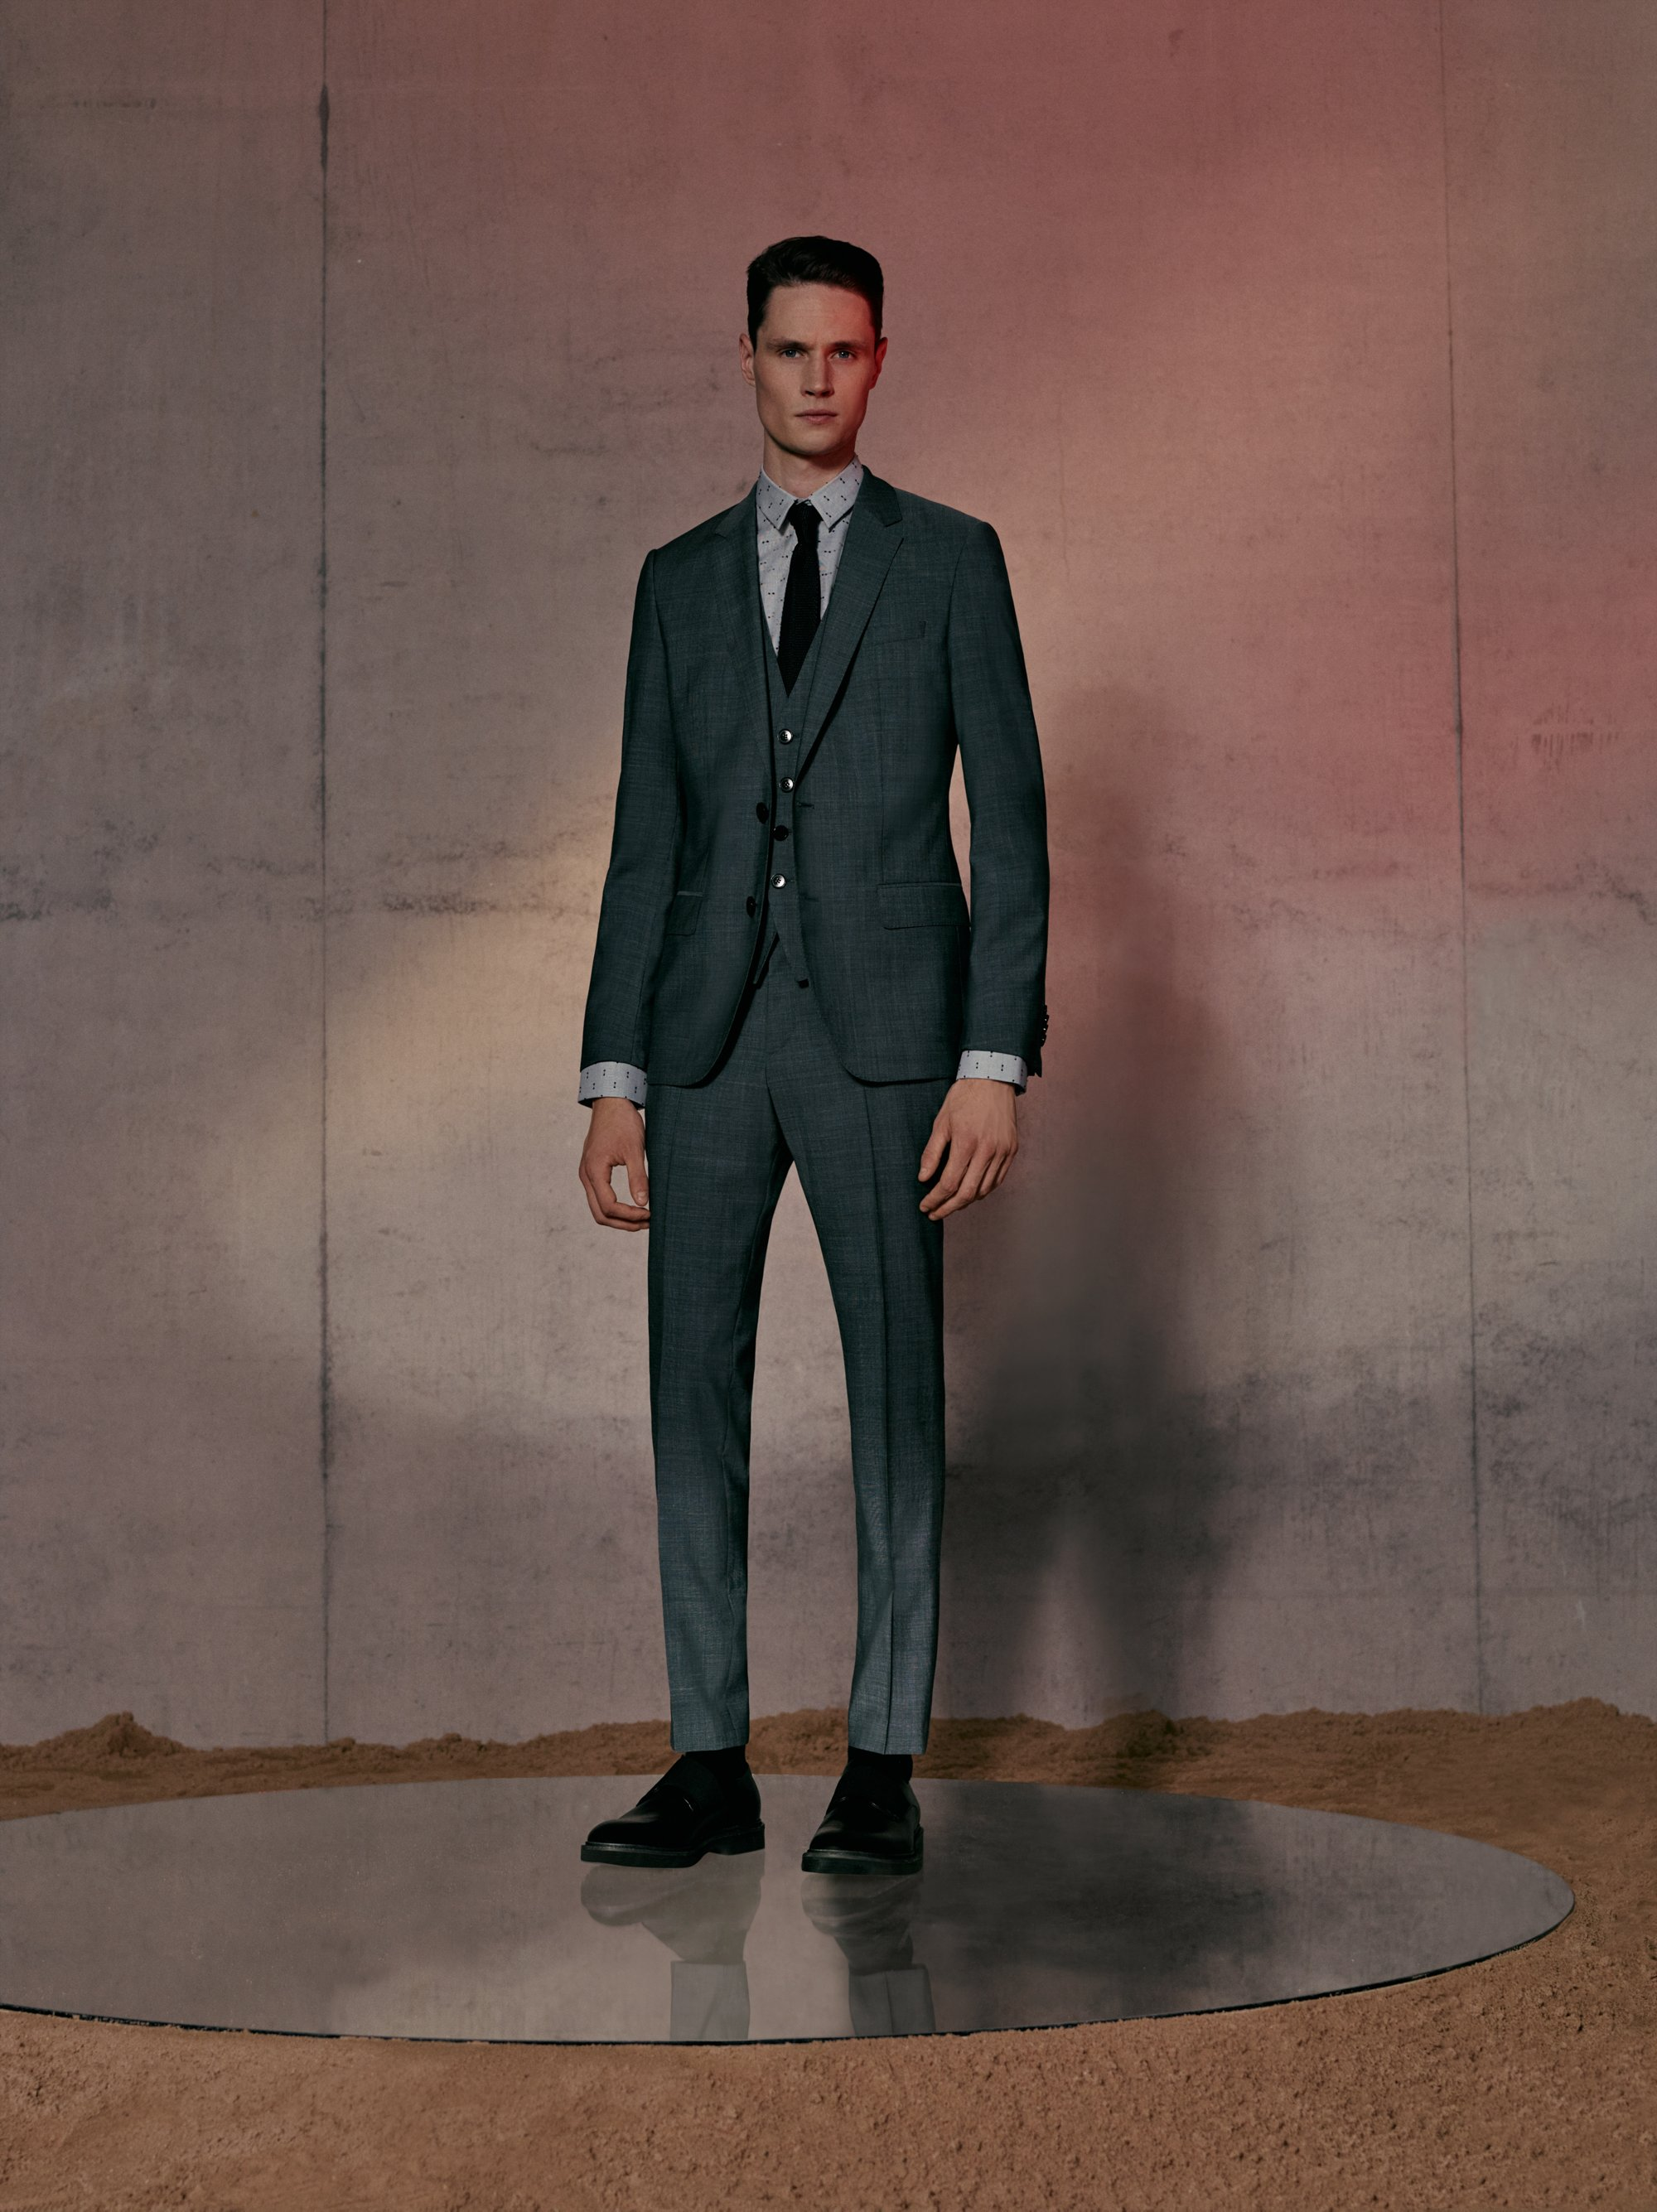 Suit, shirt and tie by HUGO Men